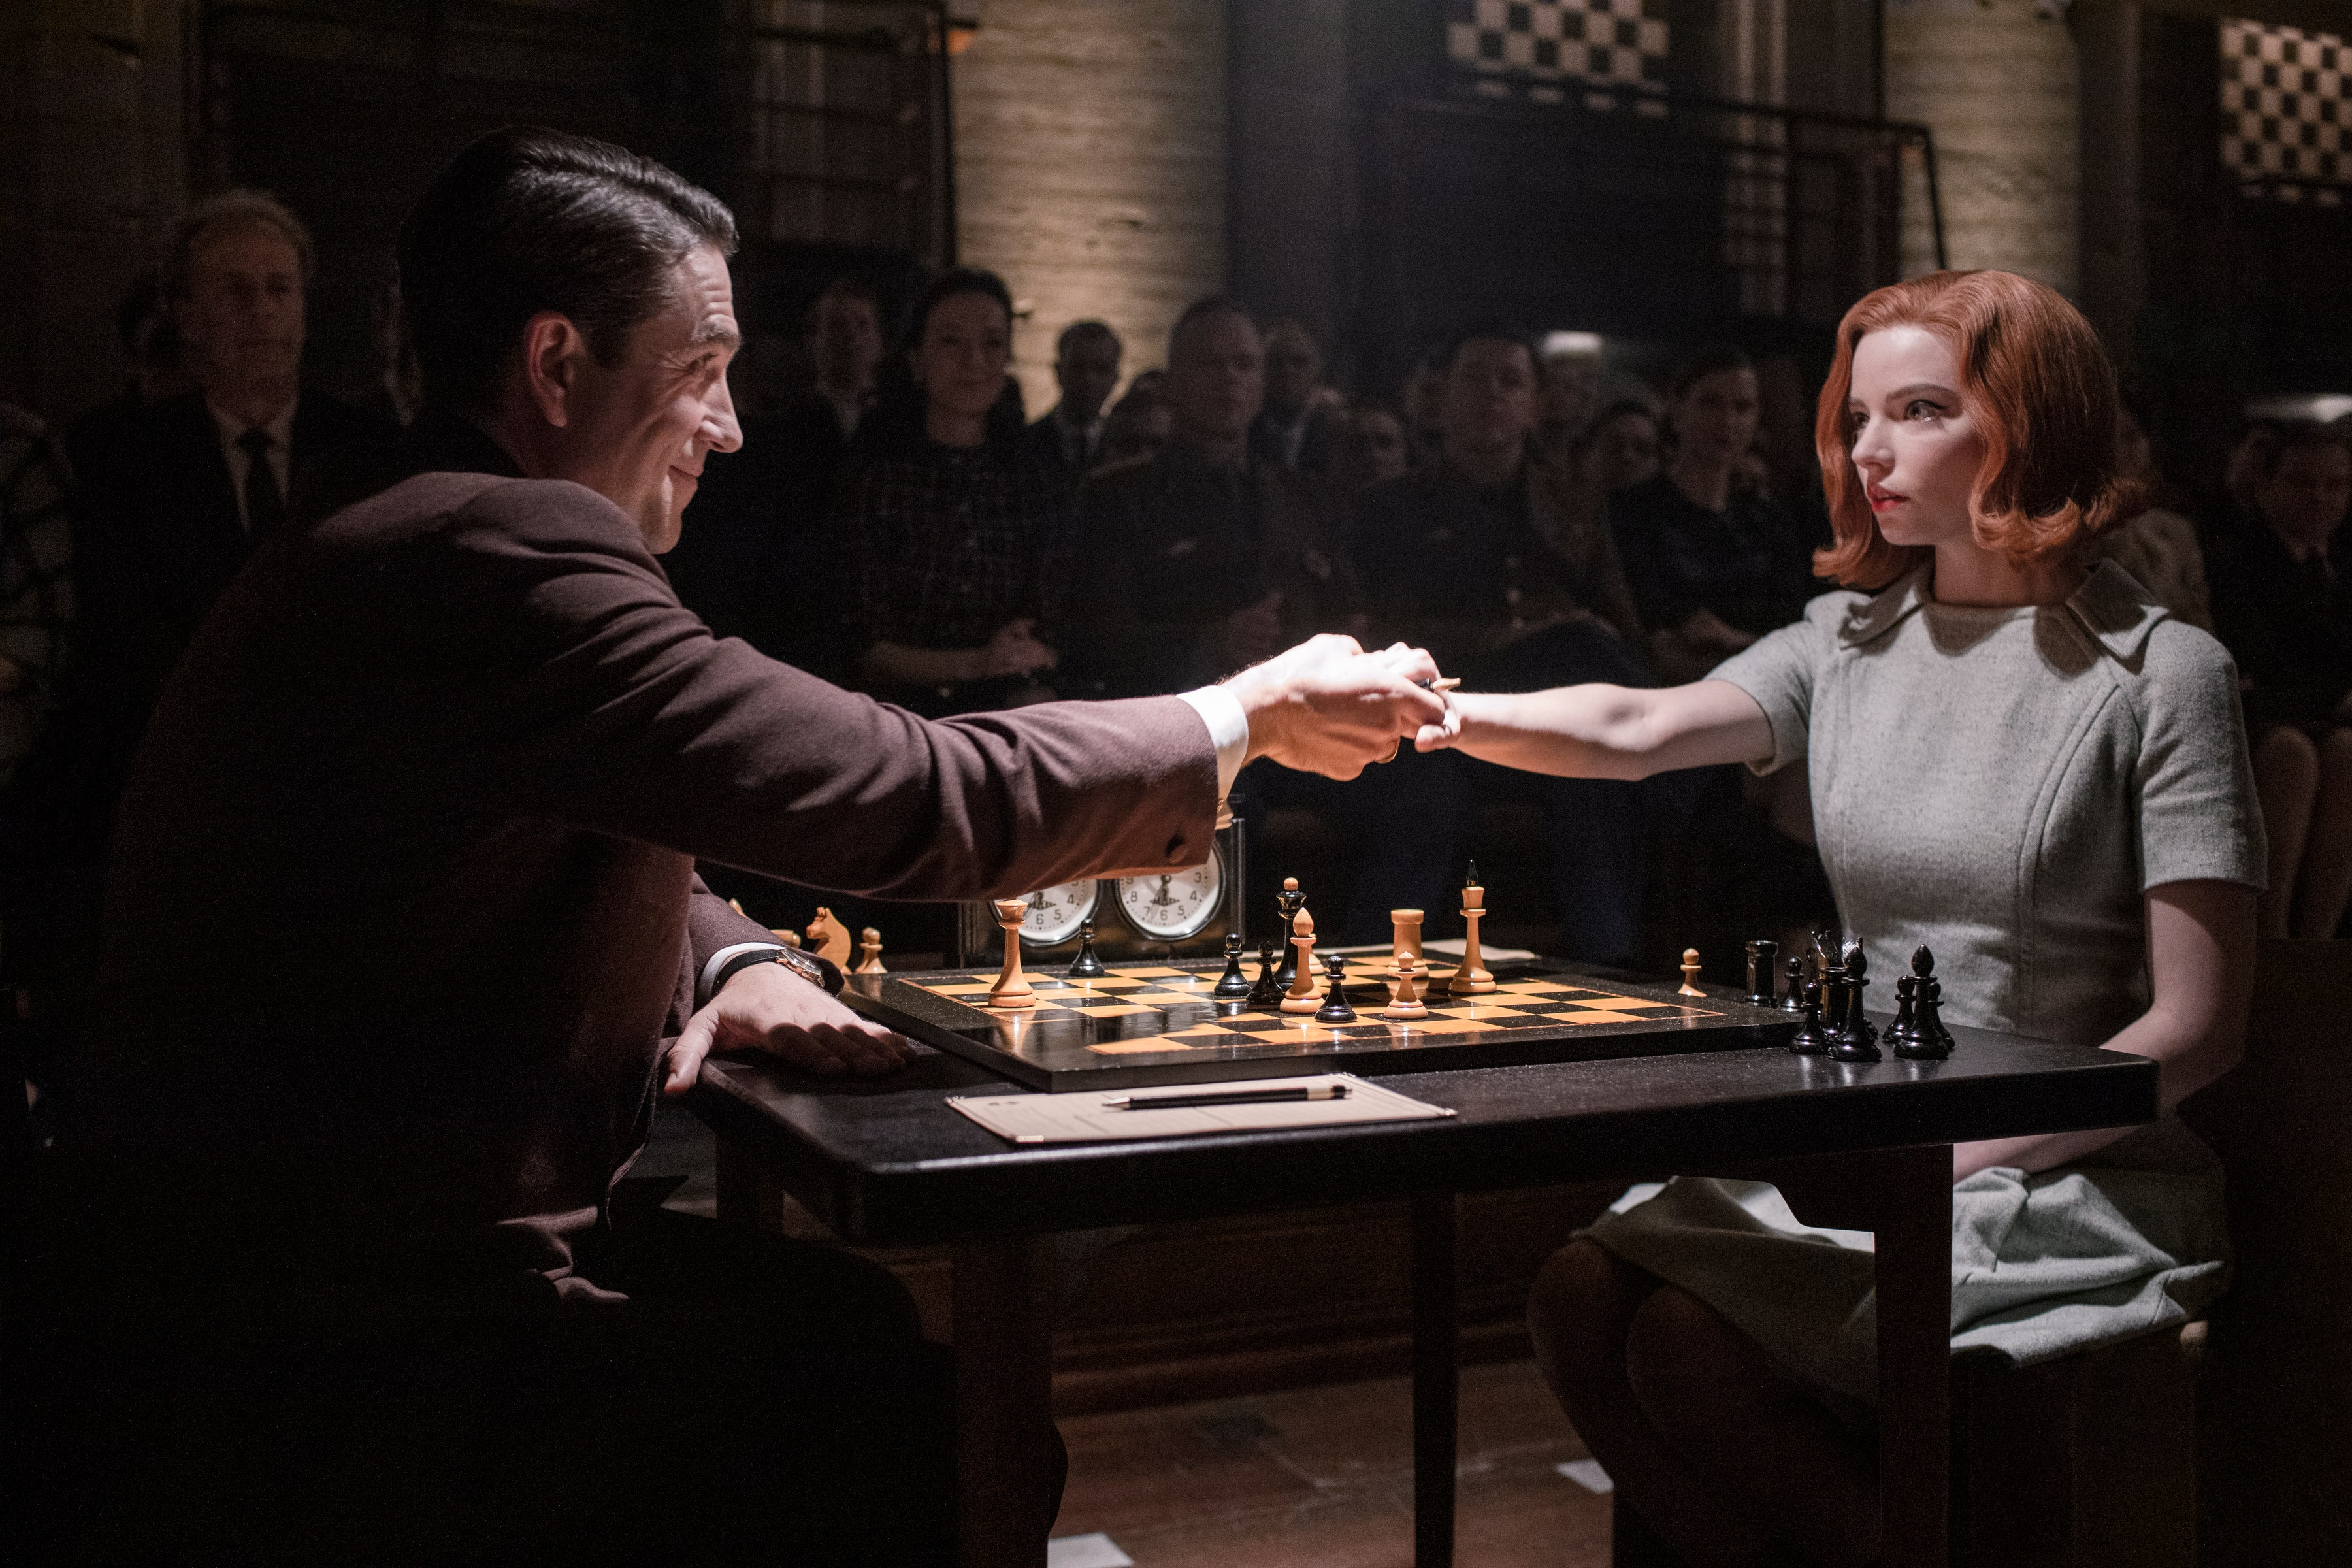 """A Chess Champion Sues Netflix Over """"Sexist"""" The Queen's Gambit Line"""